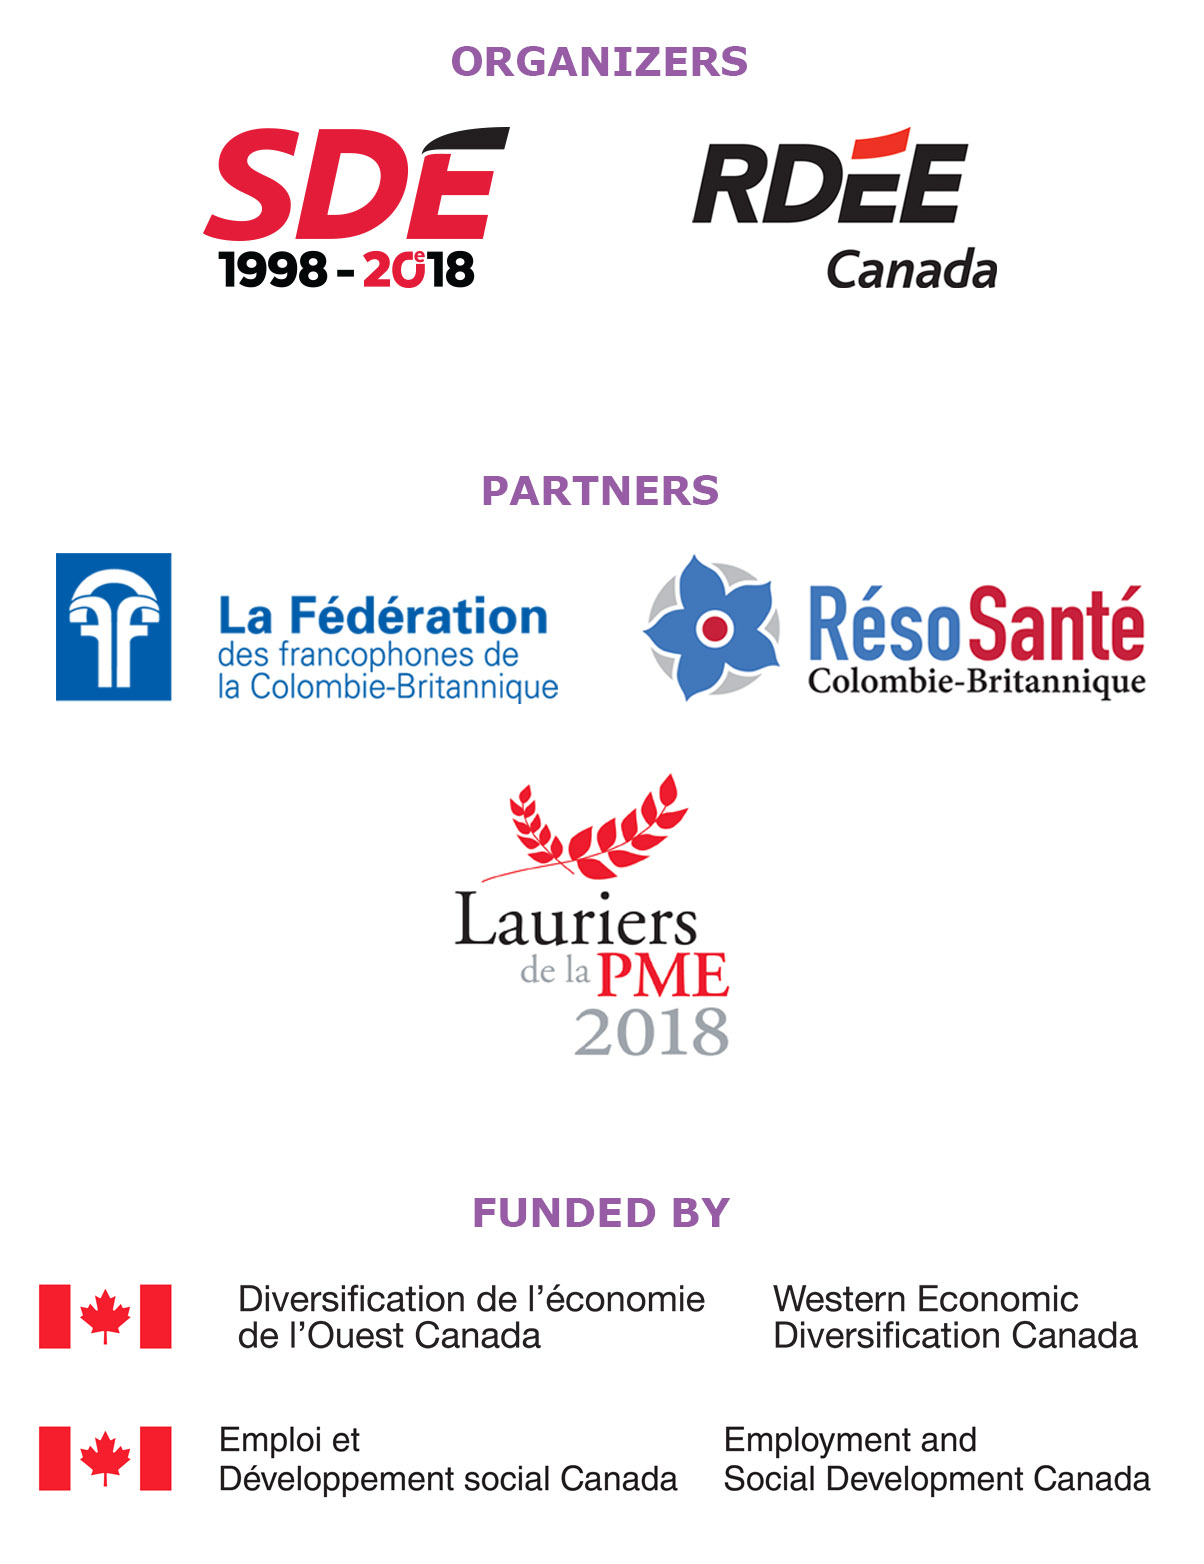 Organizers/partners/funded by